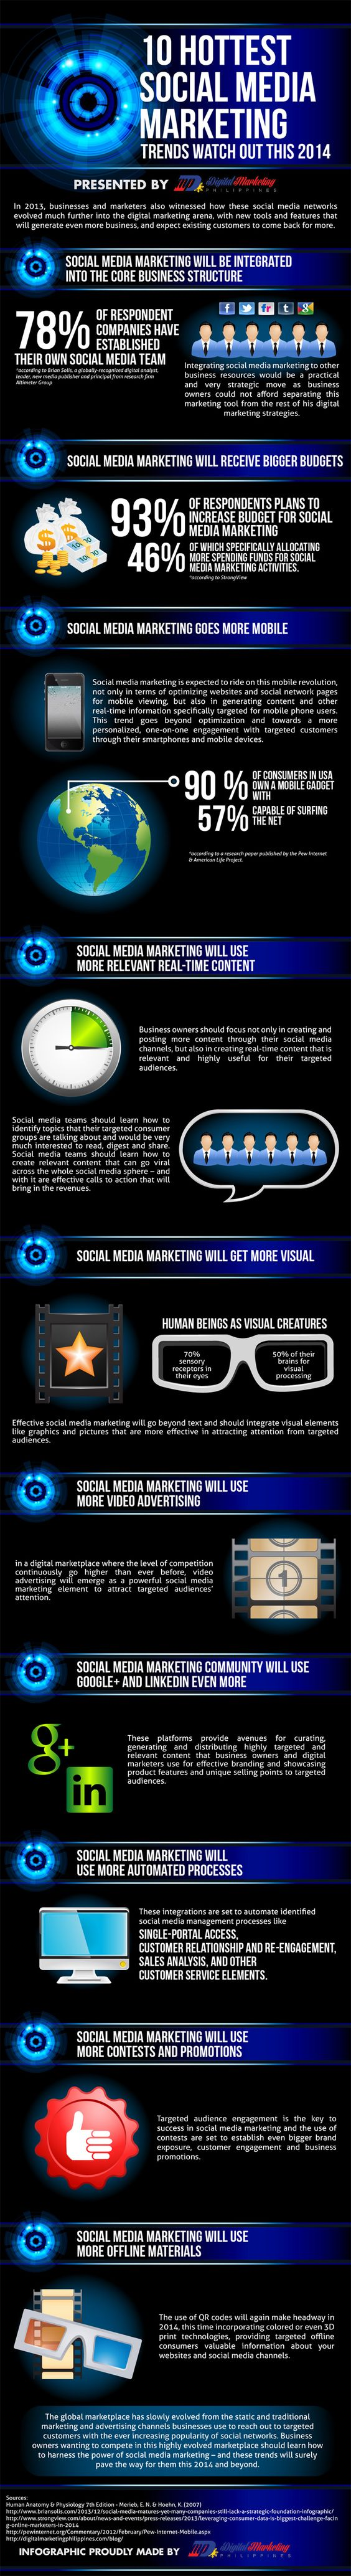 10 Hottest Social Media #Marketing Trends Watch Out This 2014 #Infographic